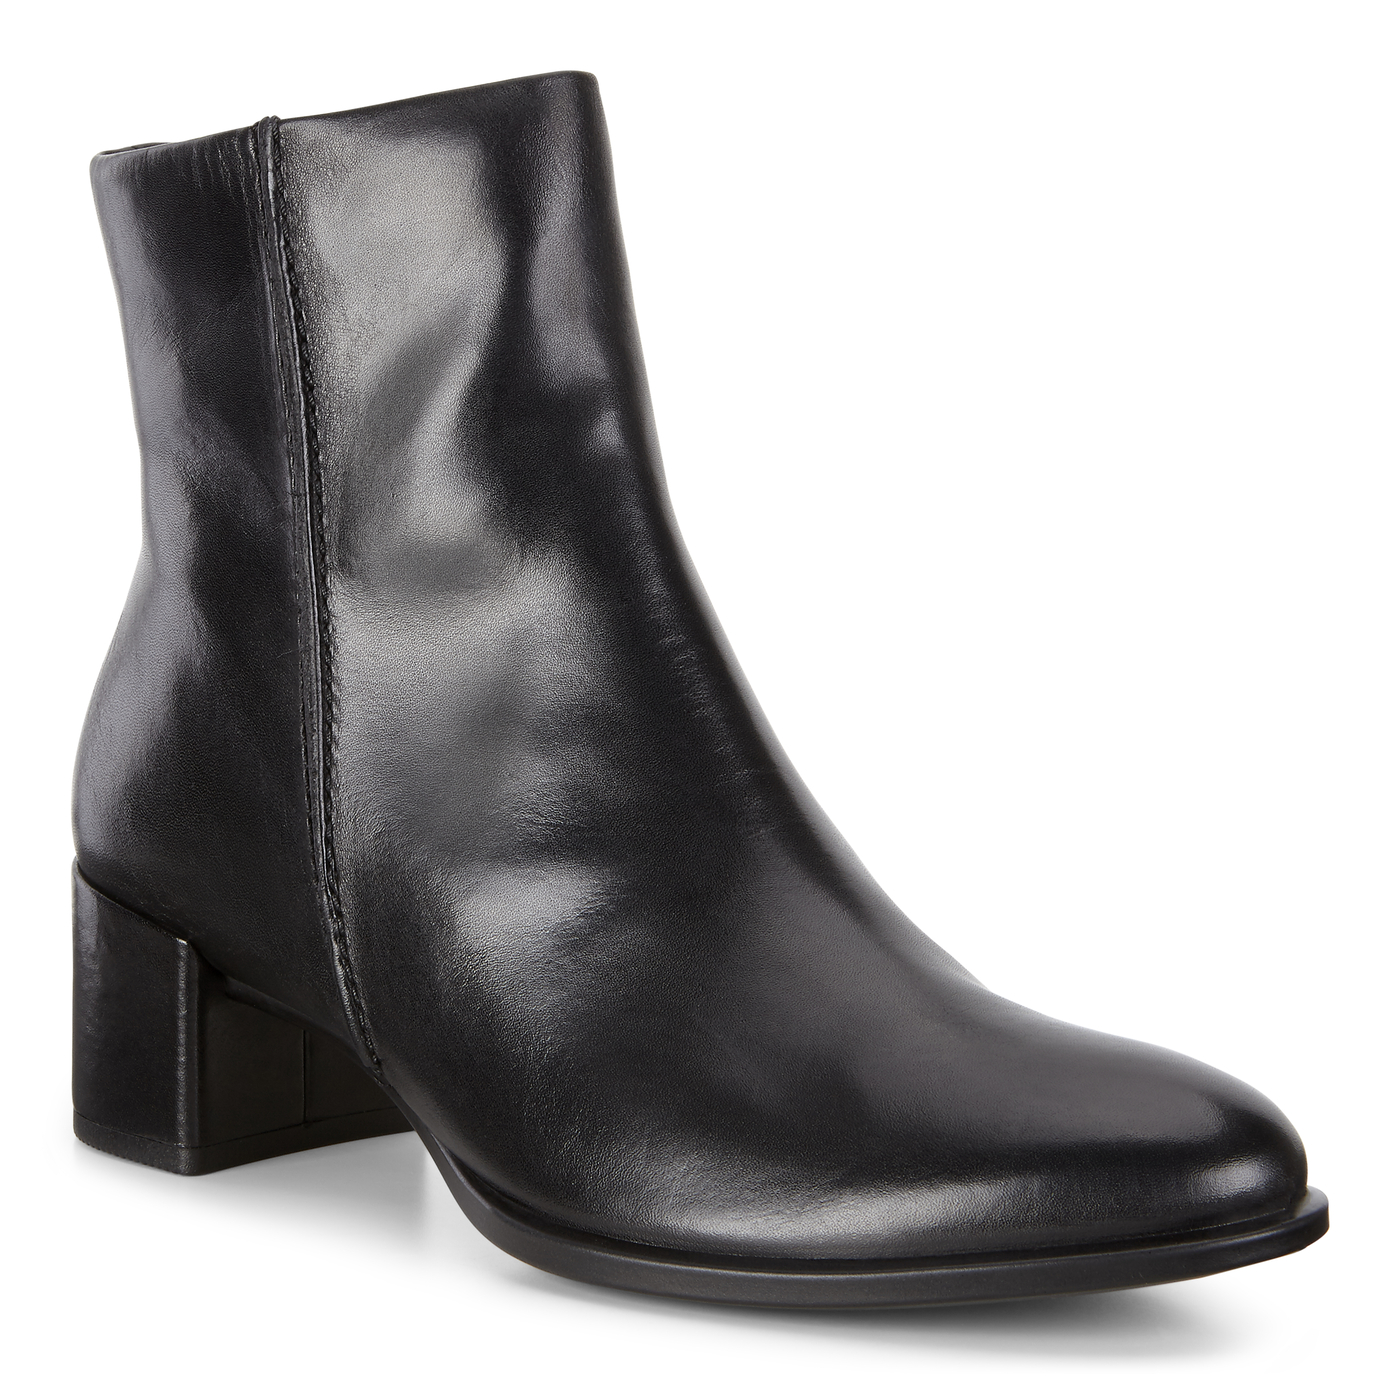 ECCO SHAPE BLOCK Ankle Boot 35mm